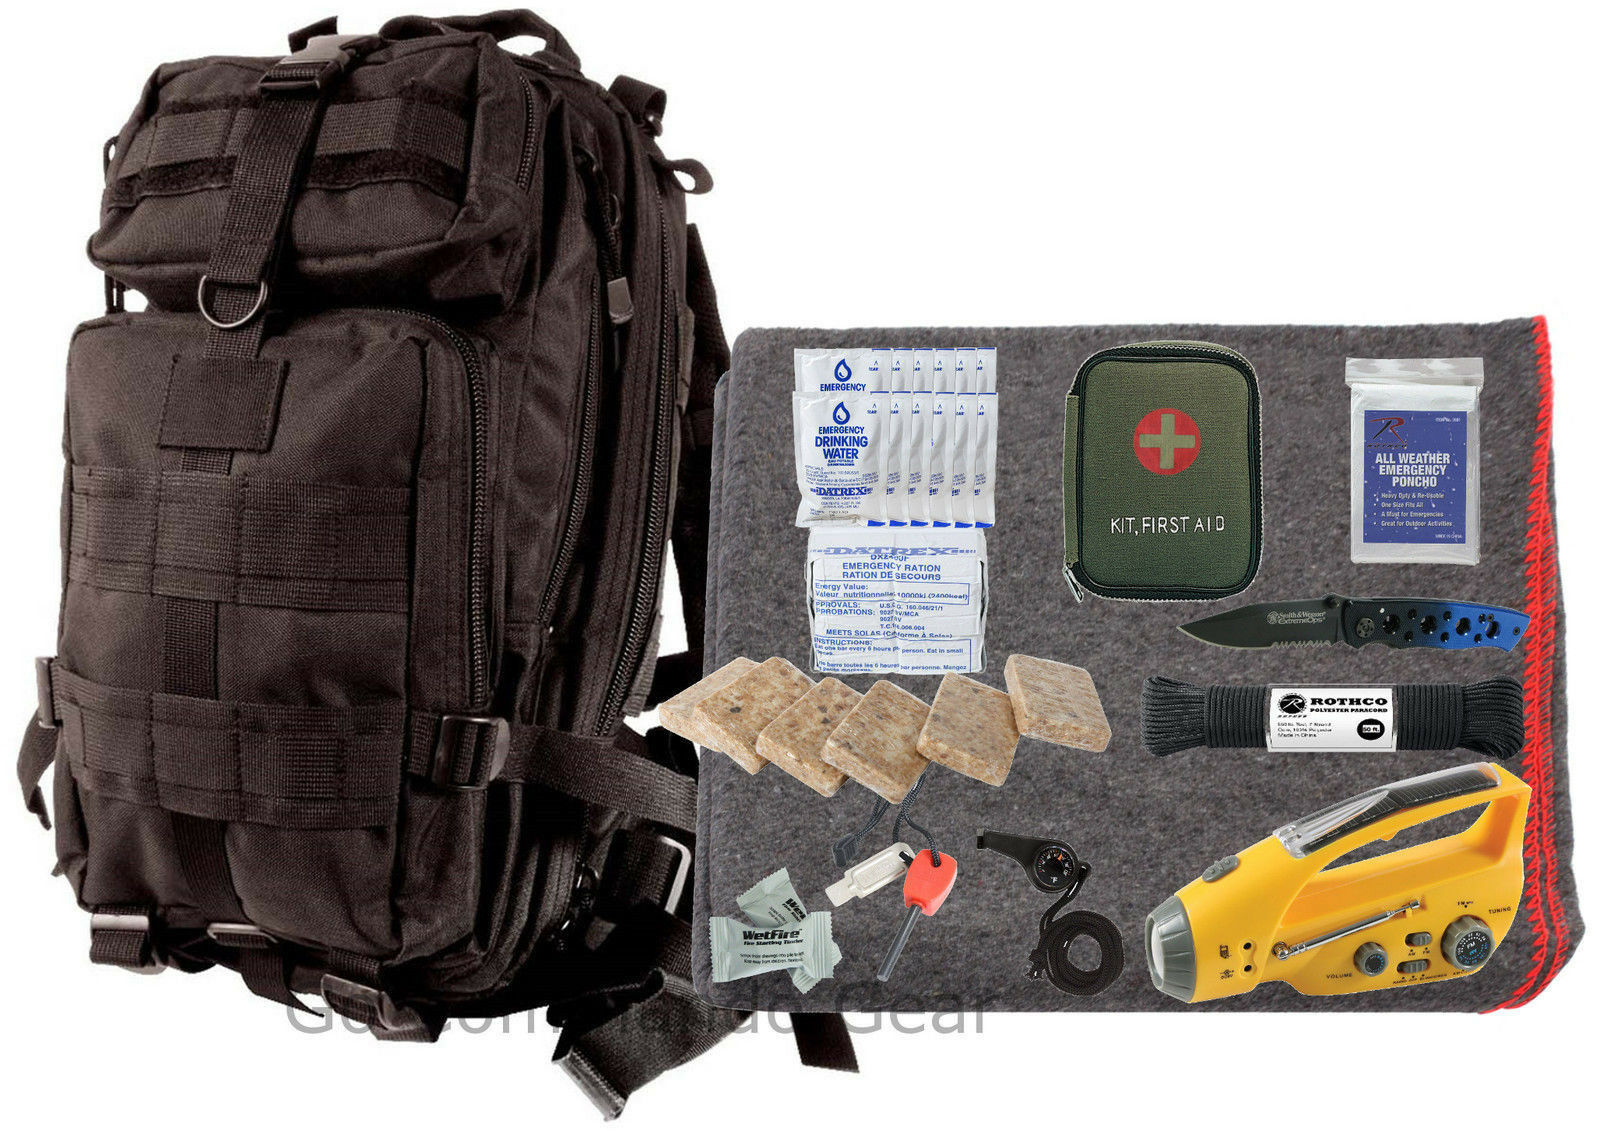 72  Hour Emergency Prep Kit - Food Water First Aid & More - Disaster Bug Out Bag  clearance up to 70%